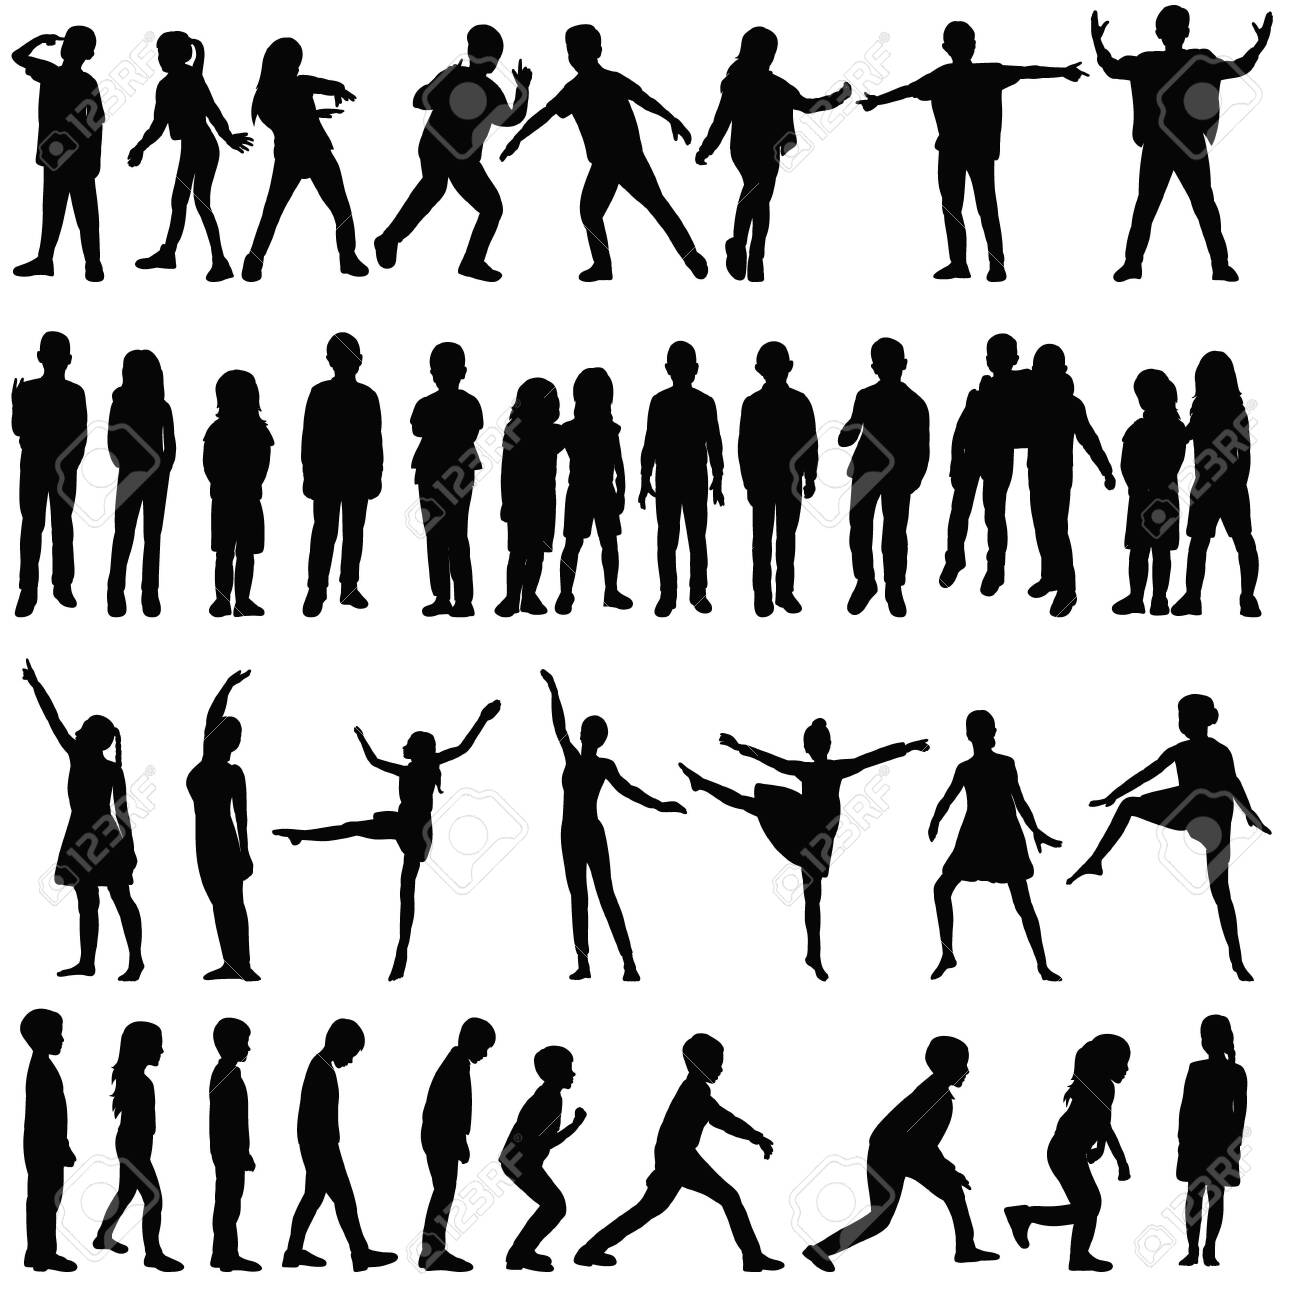 isolated, silhouette set kids, people, dance - 154193519